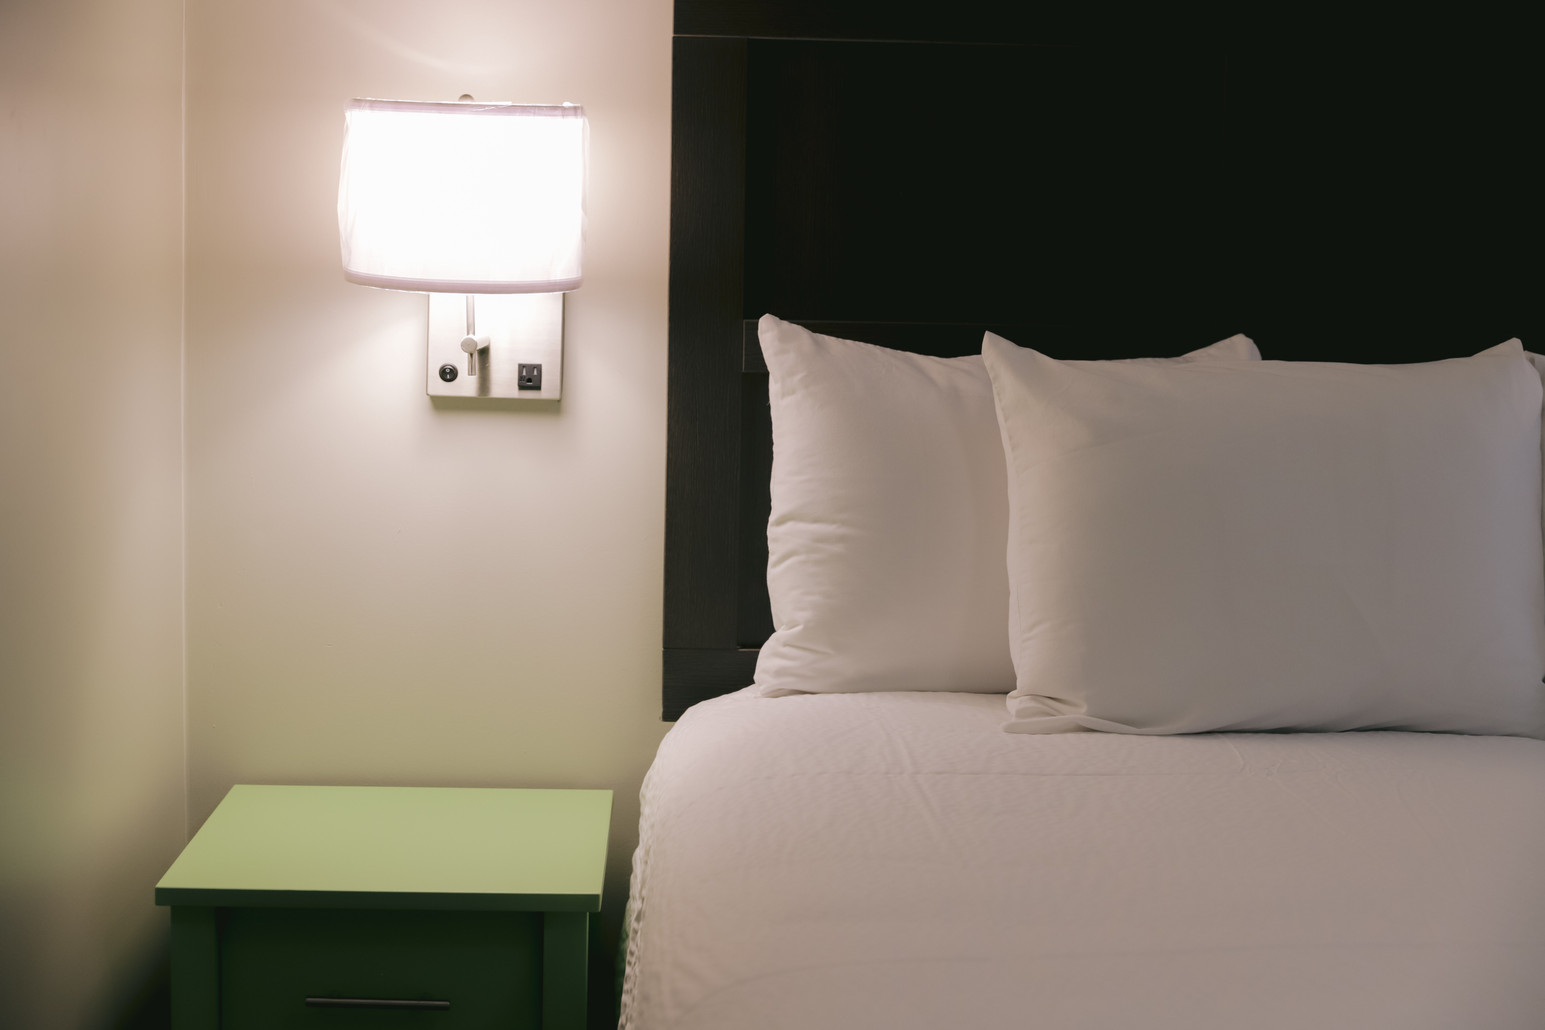 All Rooms Come With A Mini-Fridge, Microwave, Safe, Bathroom Amenties, & SMART TVs